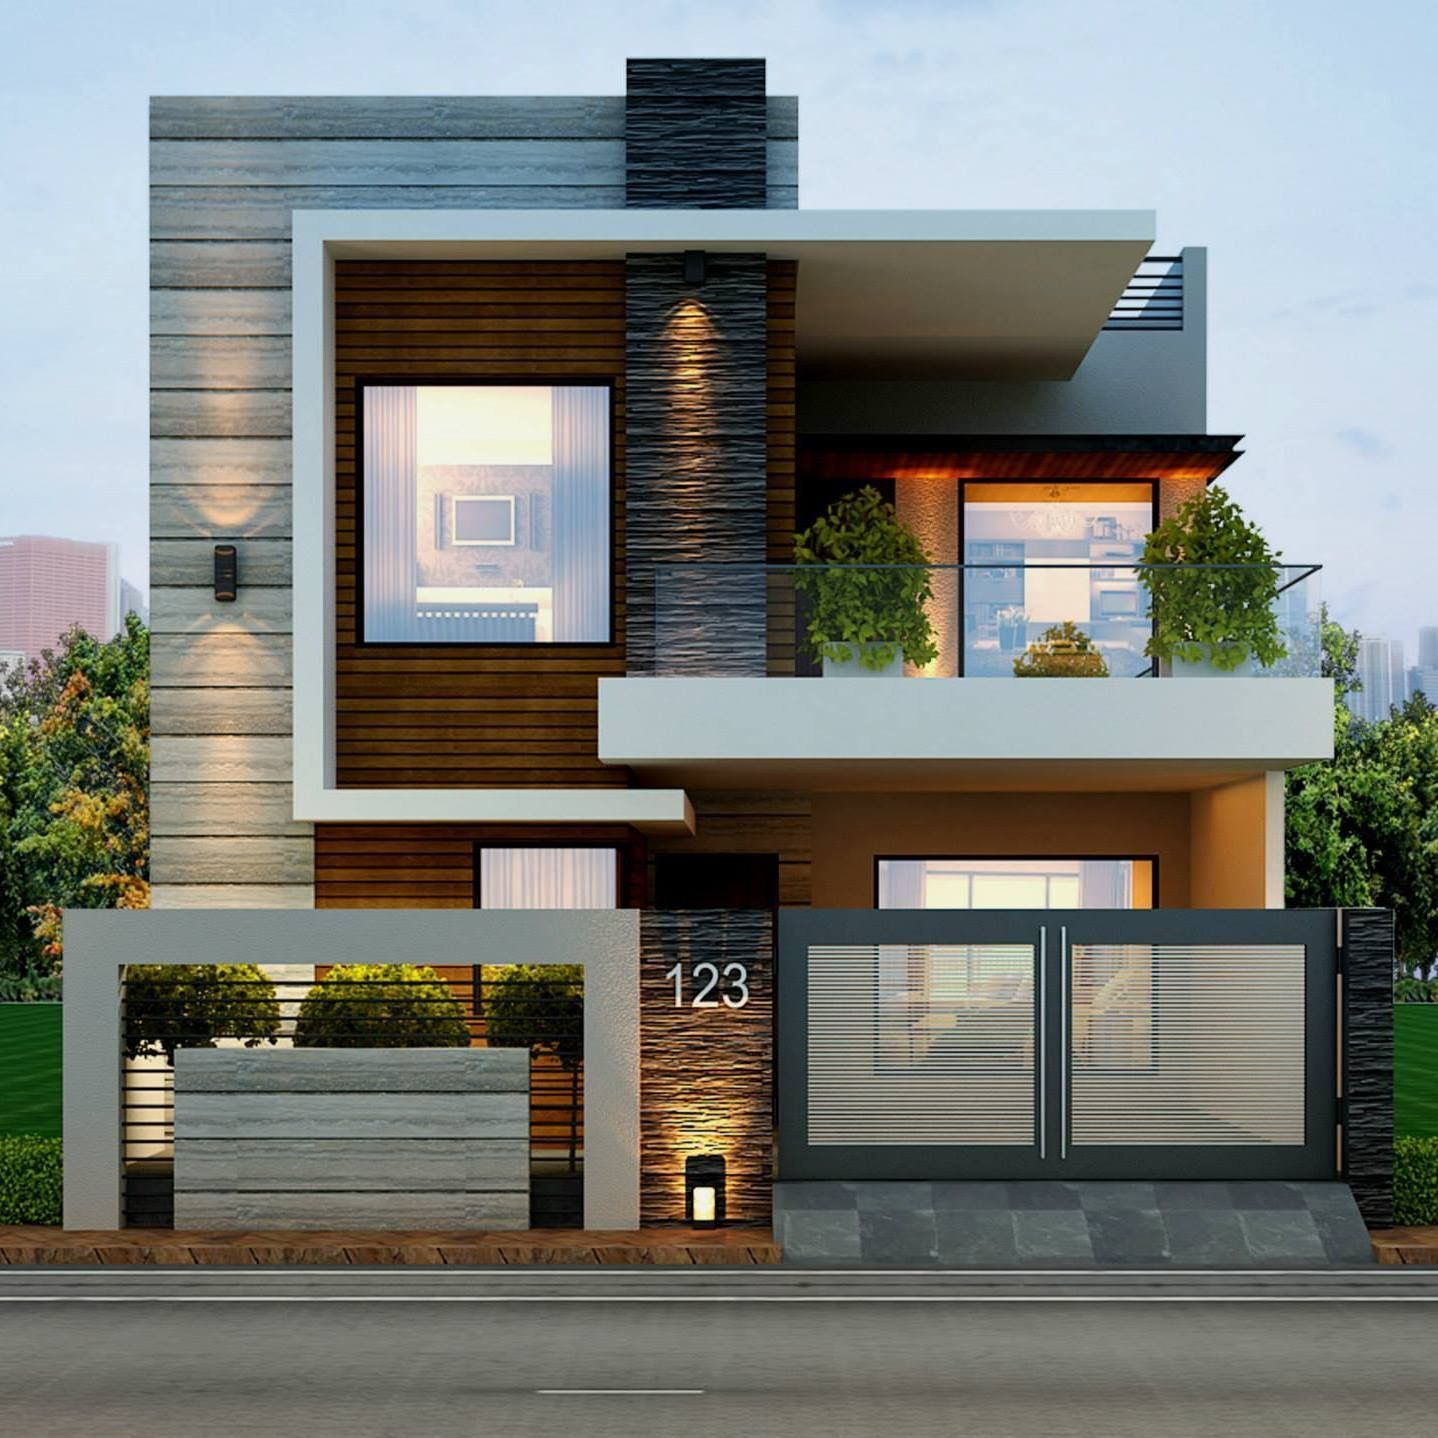 Modern Architecture Ideas 172 र म House Design Modern House